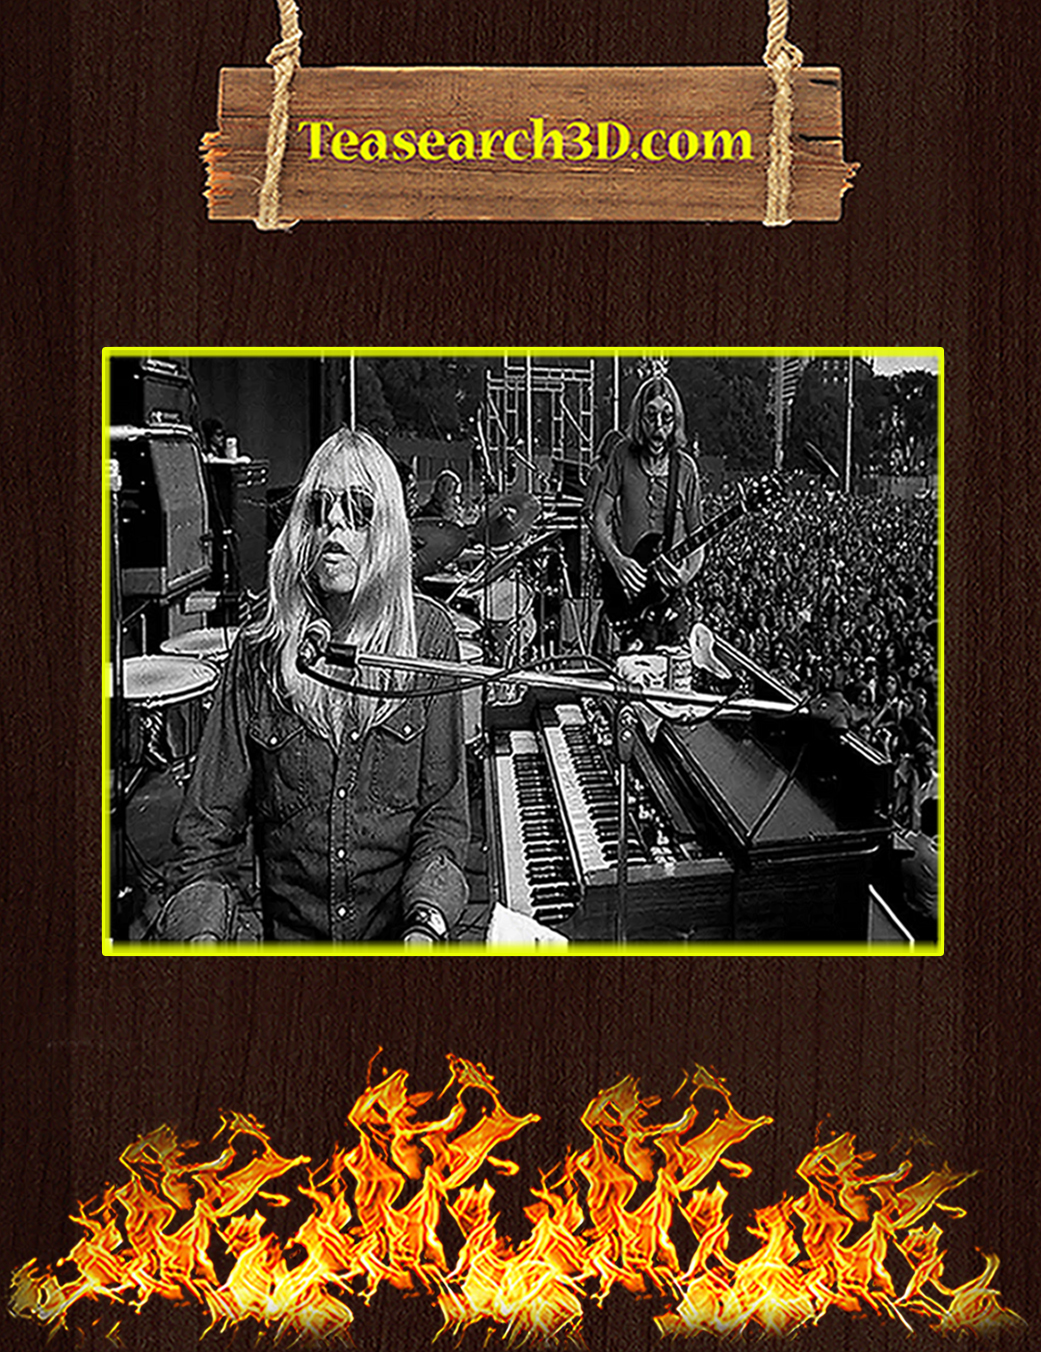 Gregg and Duane Allman Brothers poster A1